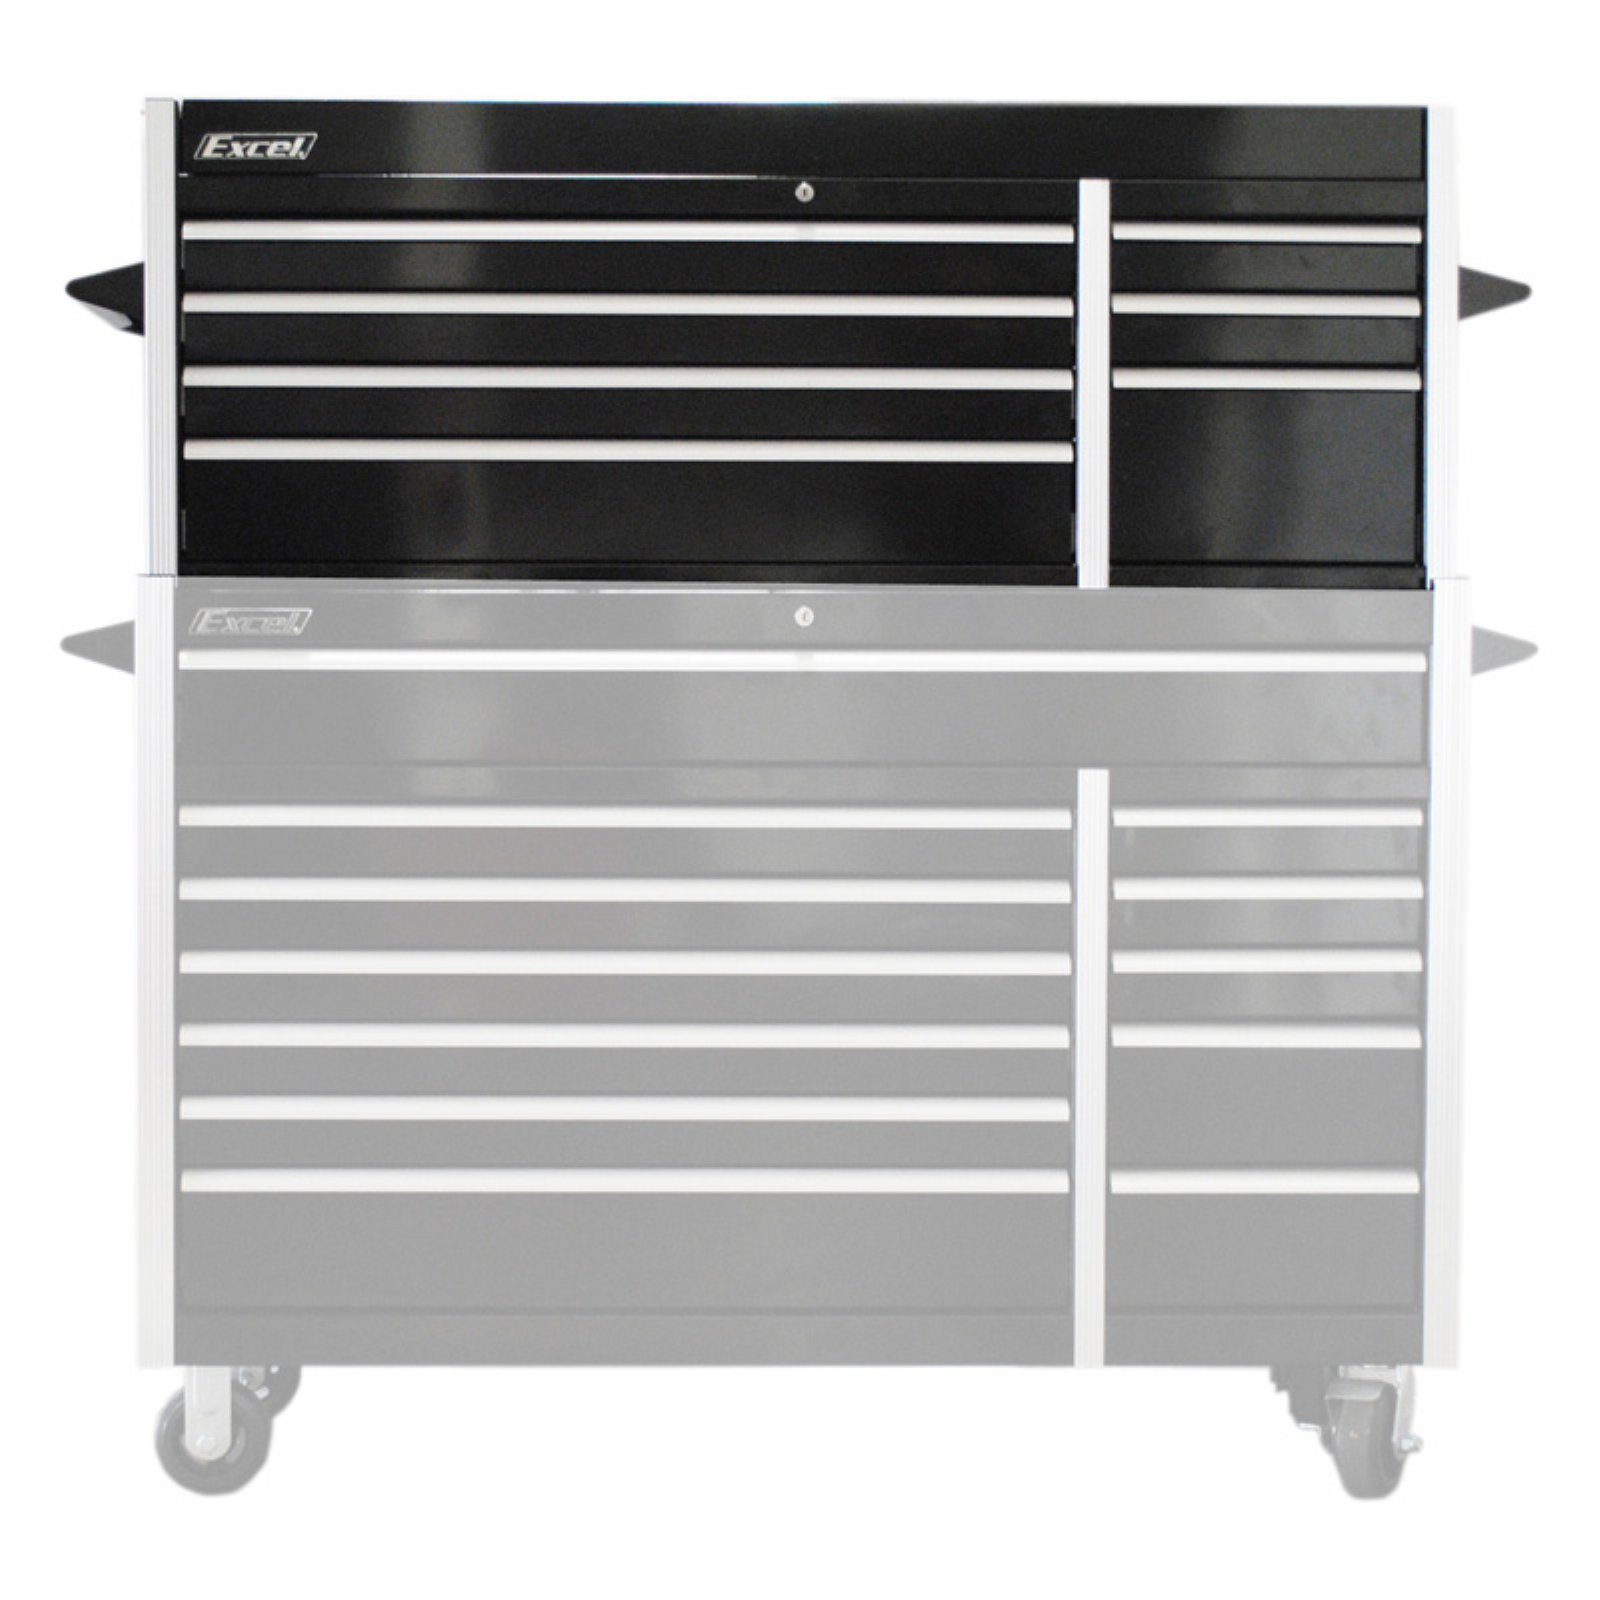 "Excel 56"" Steel Tool Top Chest with 7 Ball Bearing Drawers - Black"